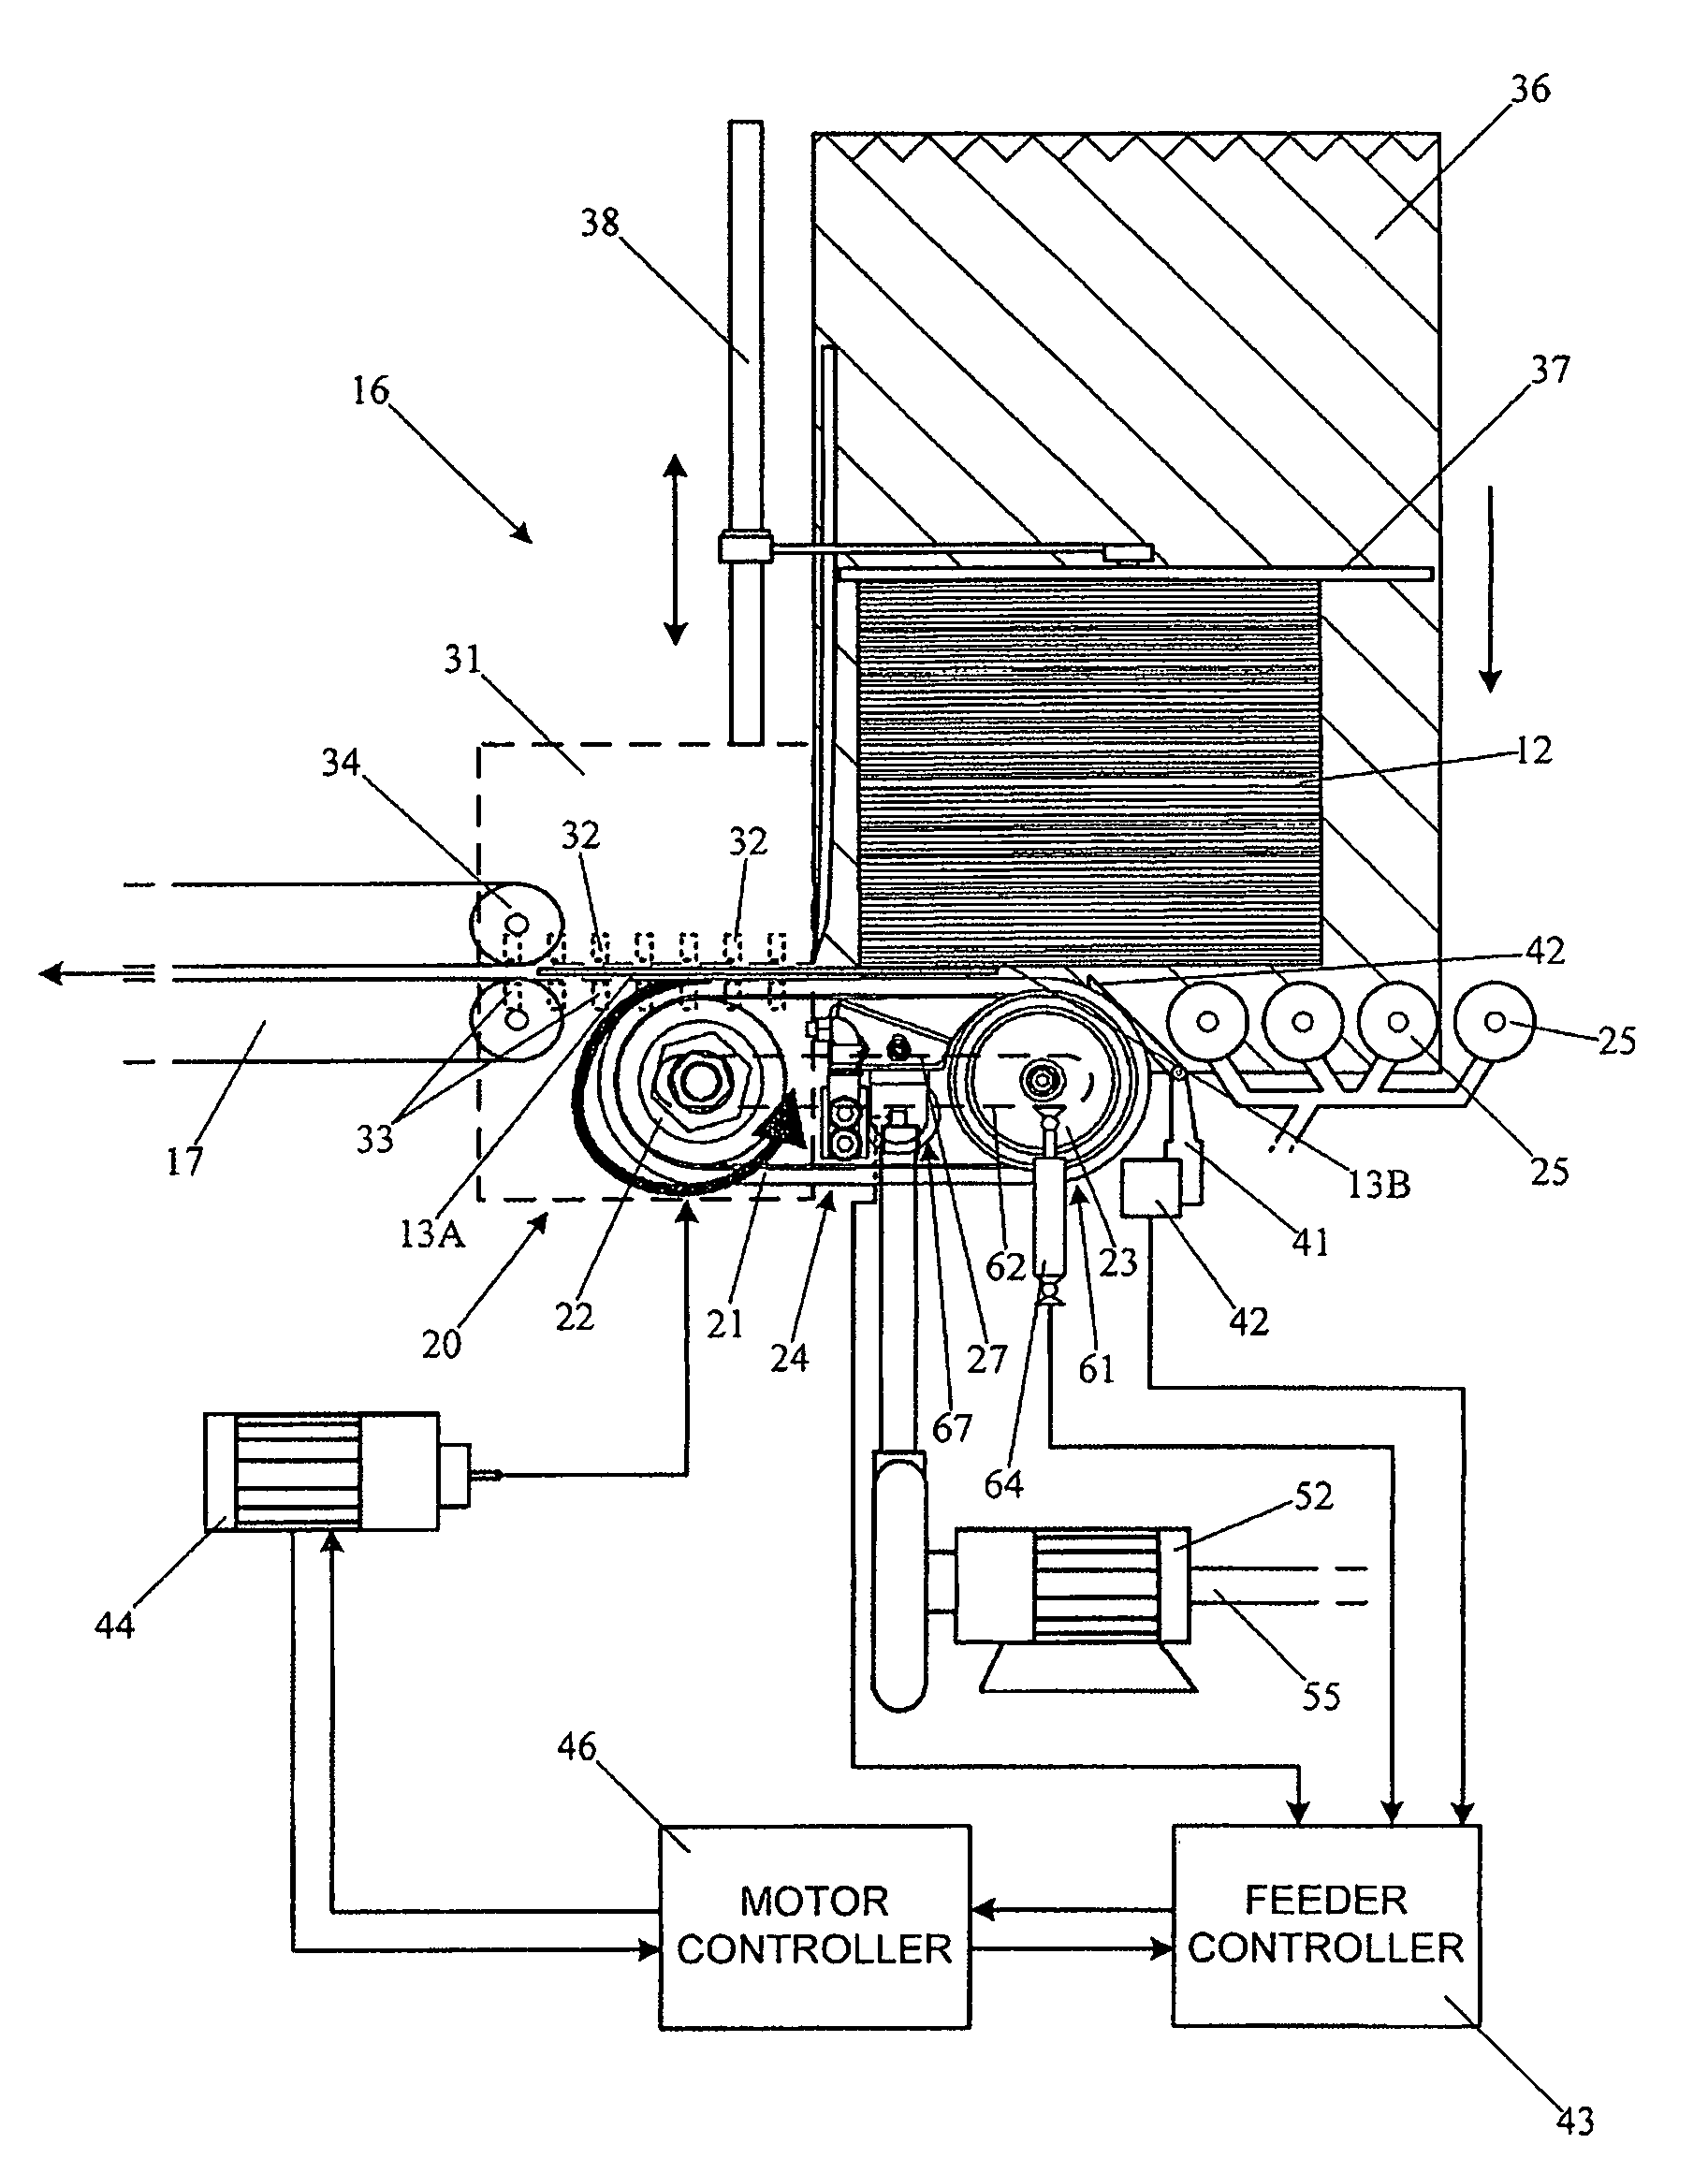 us7766318 pickoff mechanism for mail feeder Vacuum Pump patent drawing